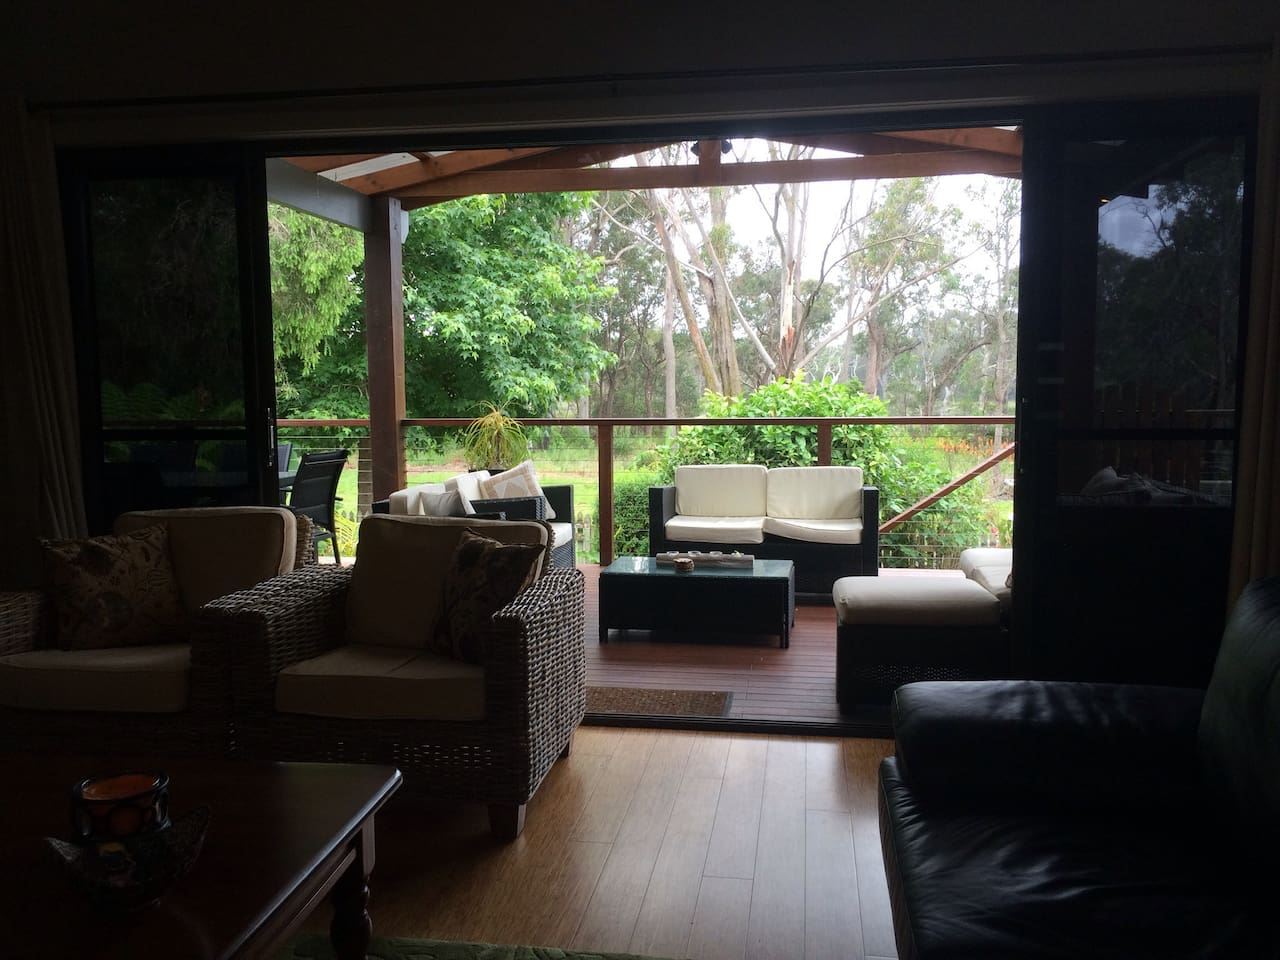 Lounge area looking towards the back deck, garden and National Park